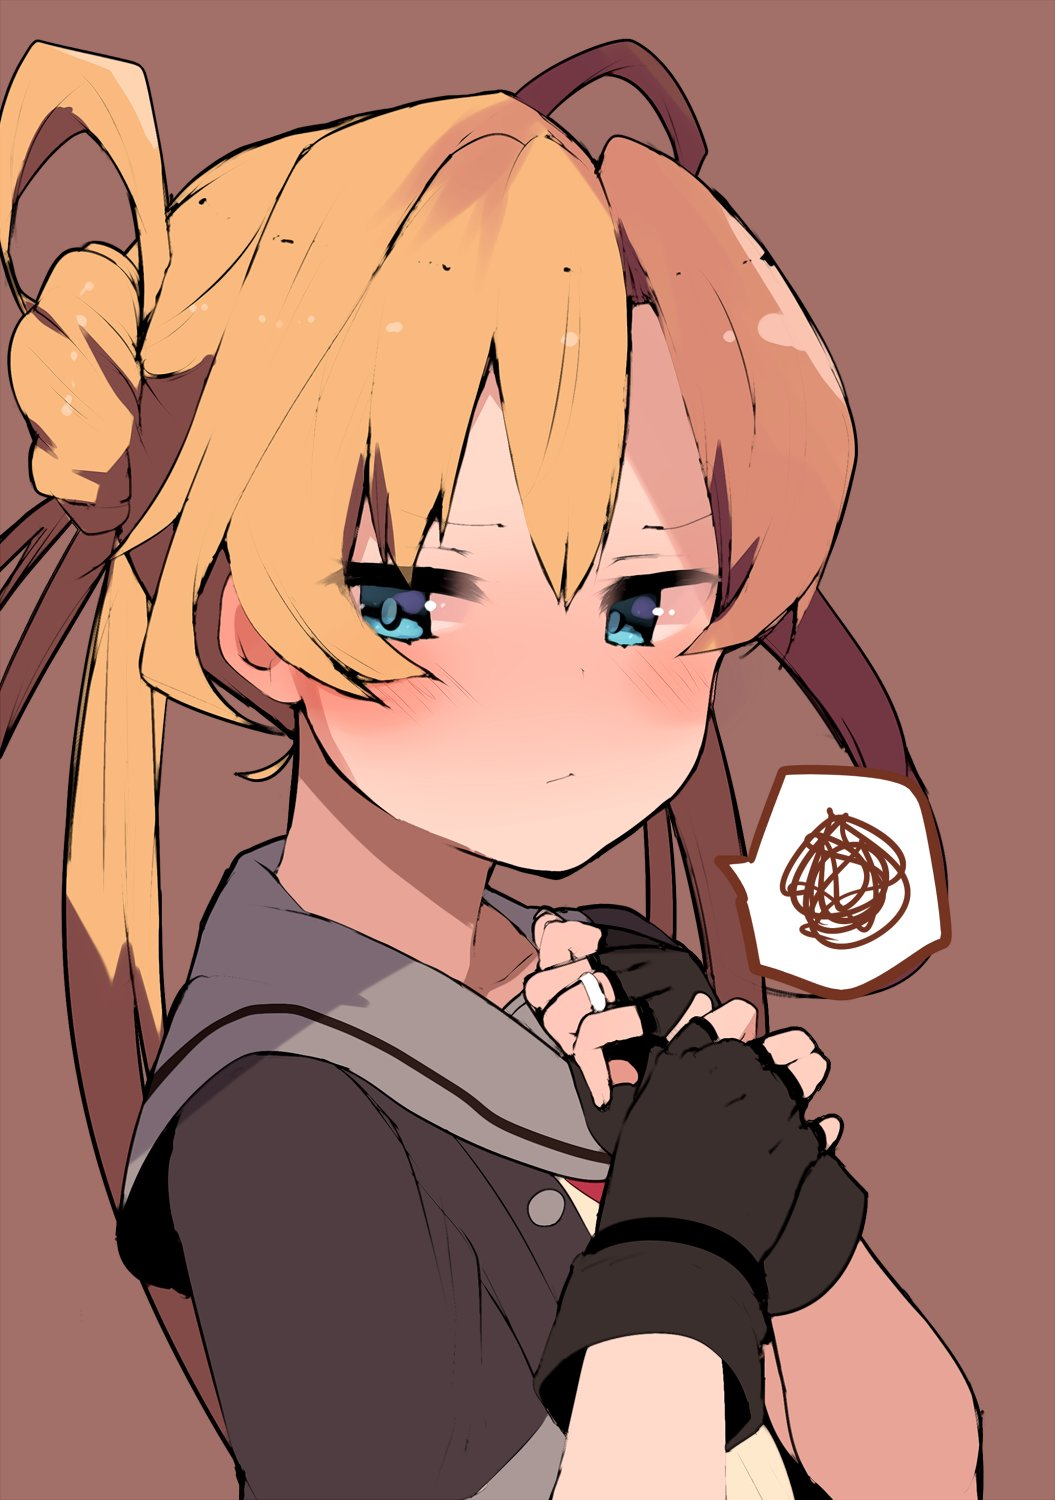 1girl abukuma_(kantai_collection) atsutoku bangs black_gloves black_jacket blonde_hair blue_eyes brown_background commentary_request double_bun gloves grey_sailor_collar grey_skirt hair_between_eyes hair_rings highres jacket jewelry kantai_collection long_hair partly_fingerless_gloves remodel_(kantai_collection) ring sailor_collar school_uniform serafuku short_sleeves simple_background skirt solo spoken_squiggle squiggle upper_body wedding_band